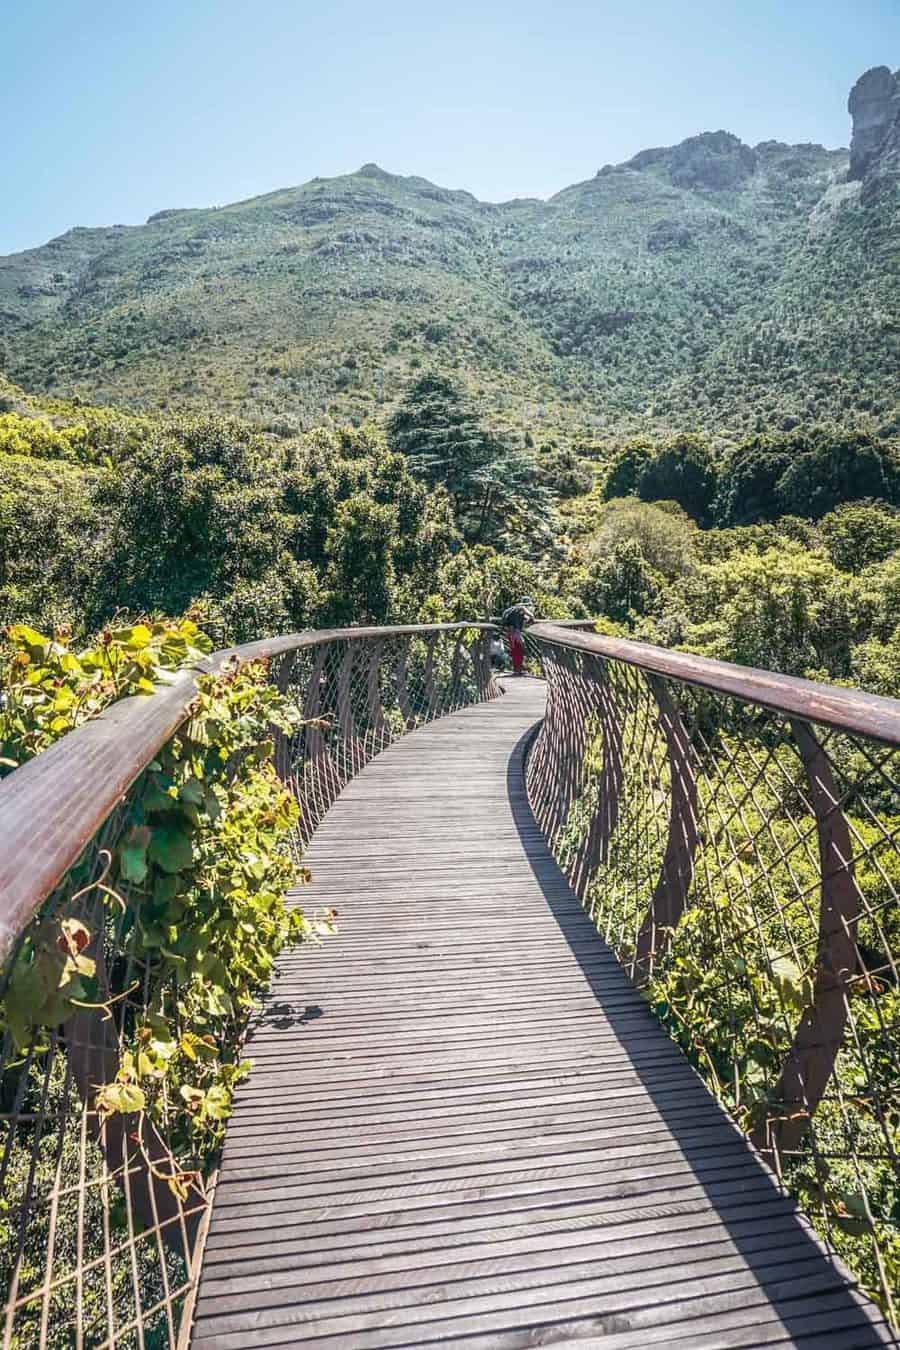 Boomslang walkway at the Kirstenbosch National Botanical Gardens